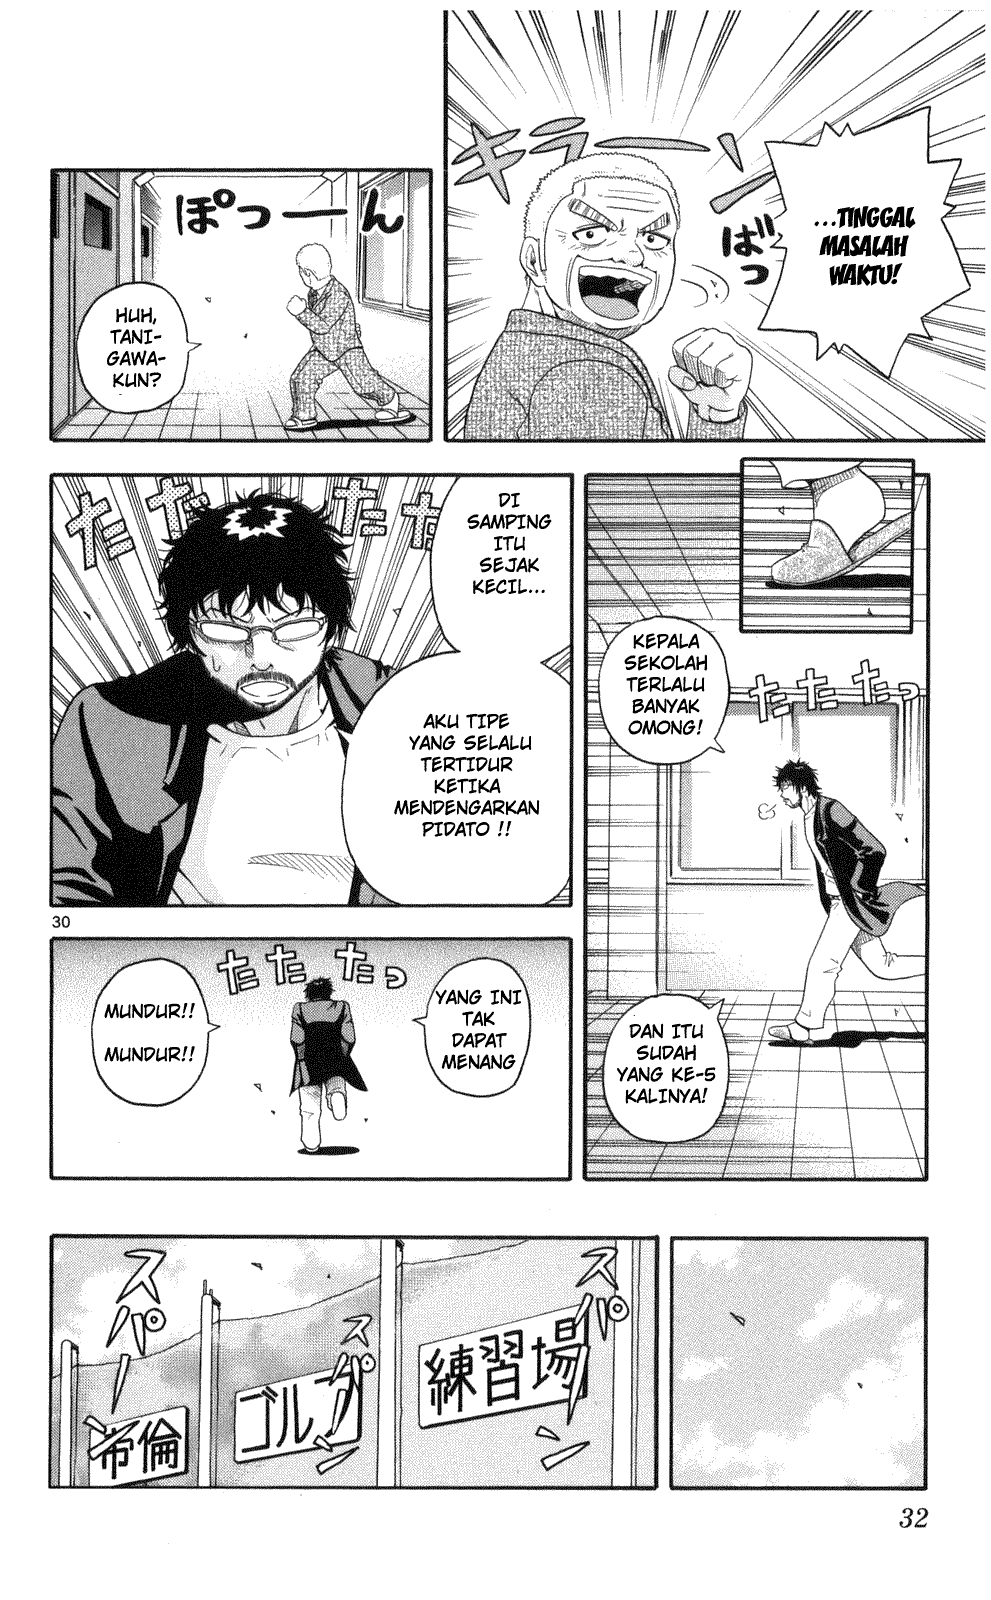 Komik king golf 001 - chapter 1 2 Indonesia king golf 001 - chapter 1 Terbaru 30|Baca Manga Komik Indonesia|